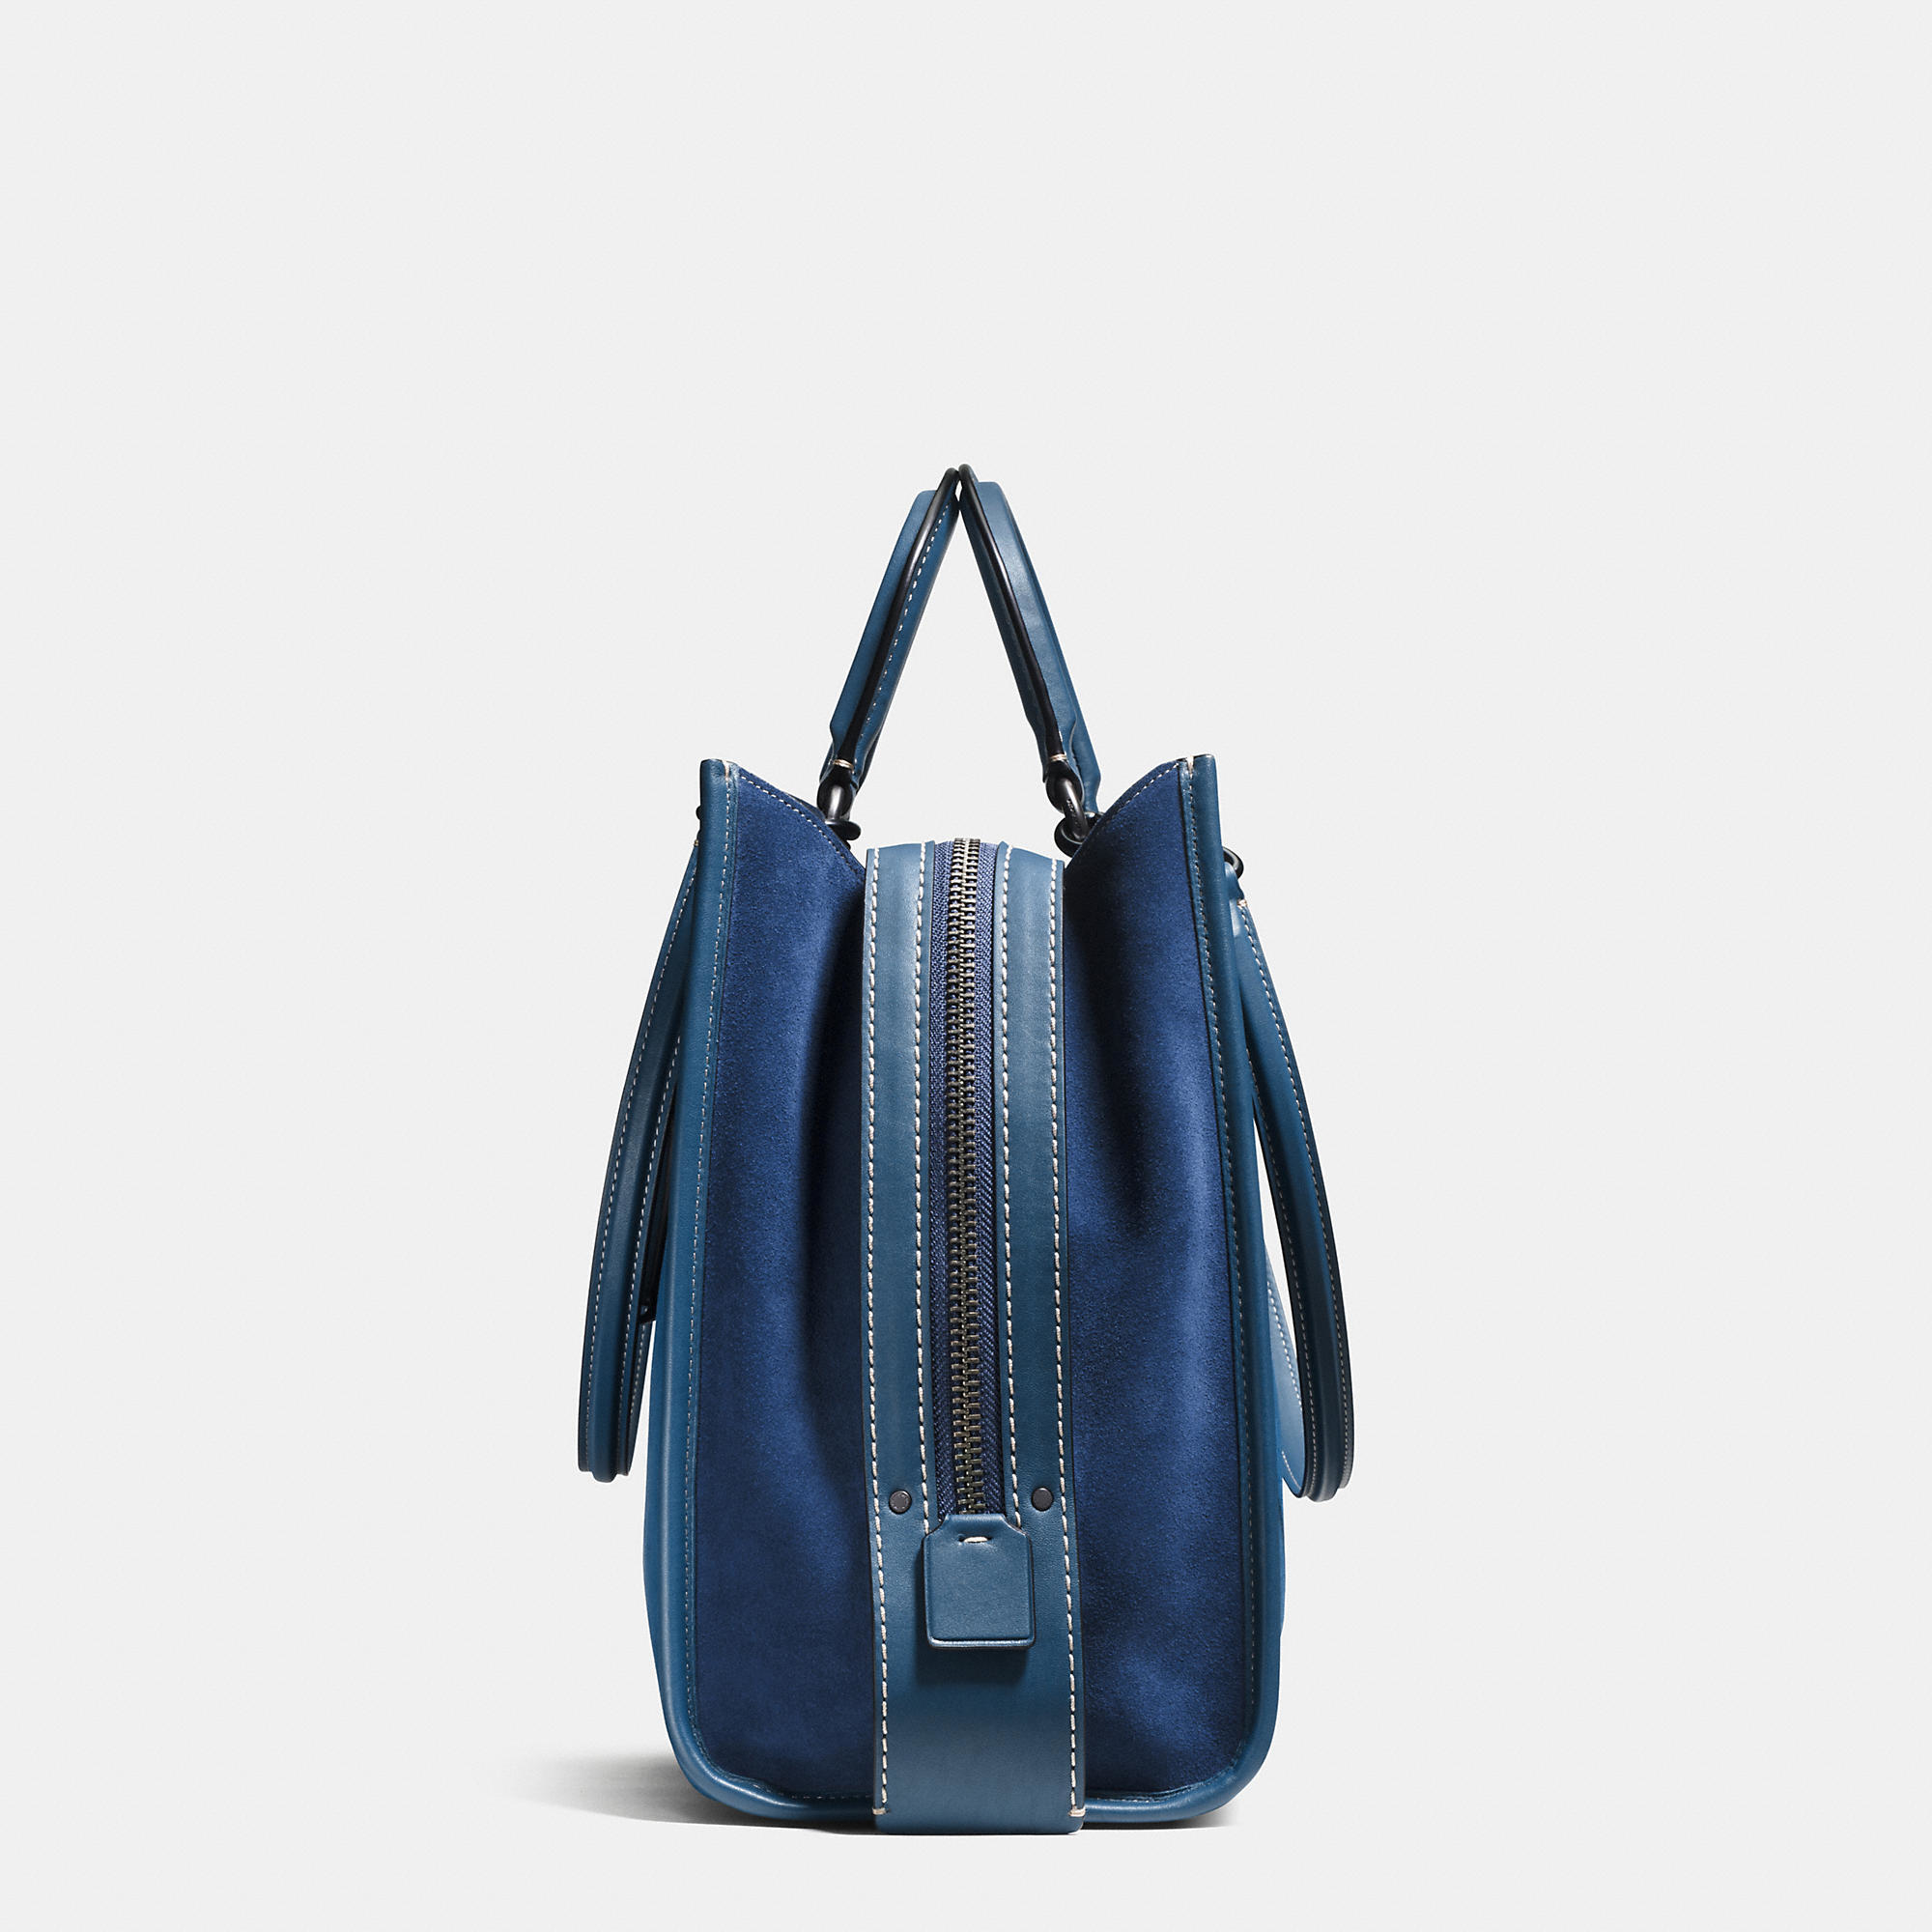 2633eaee59 ... free shipping lyst coach rogue 36 suede tote bag in blue eea25 f7168